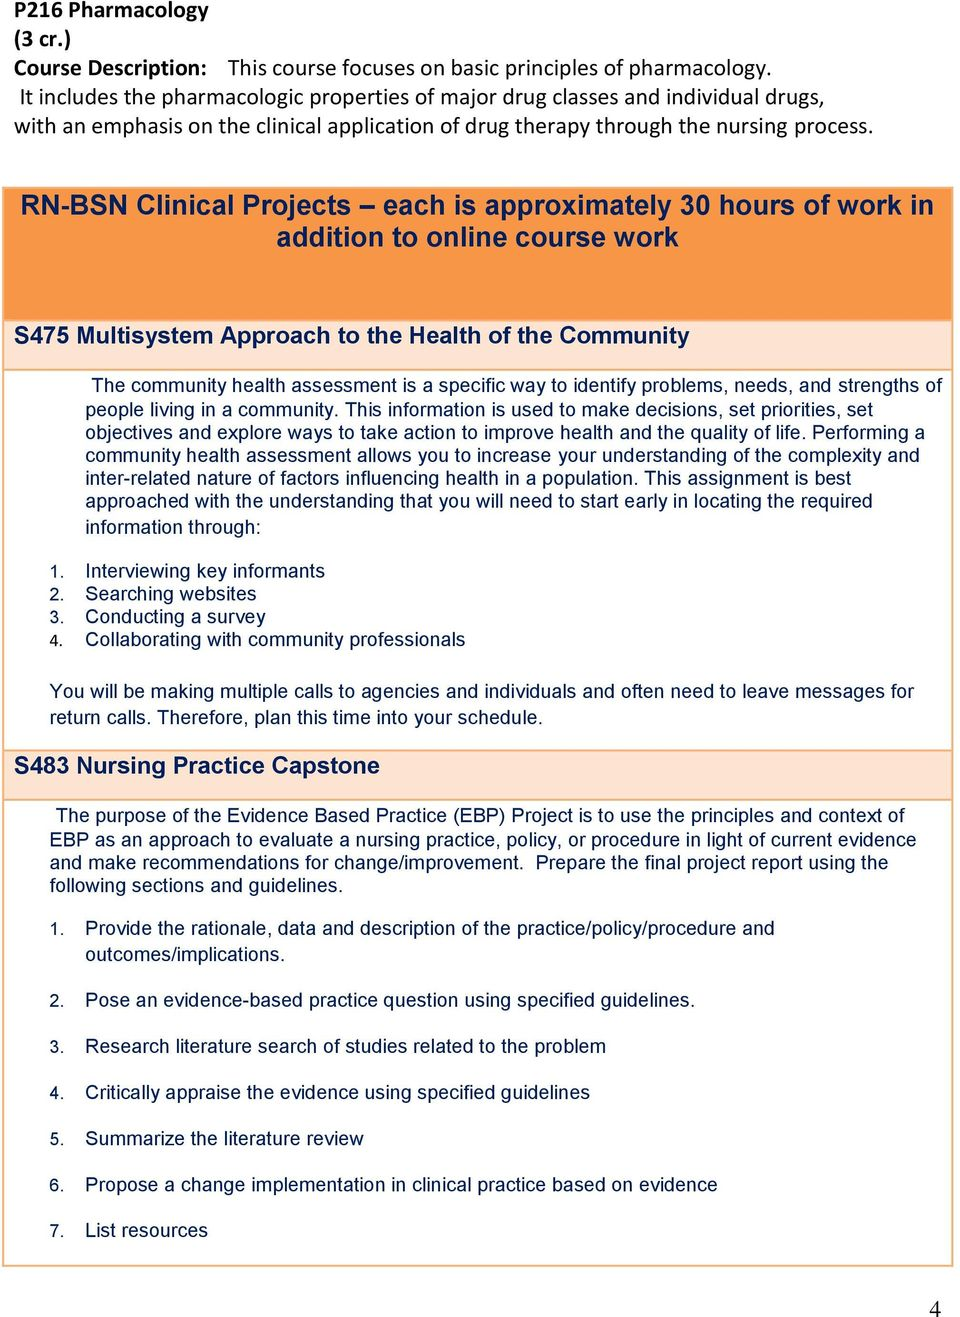 RN-BSN Clinical Projects each is approximately 30 hours of work in addition to online course work S475 Multisystem Approach to the Health of the Community The community health assessment is a